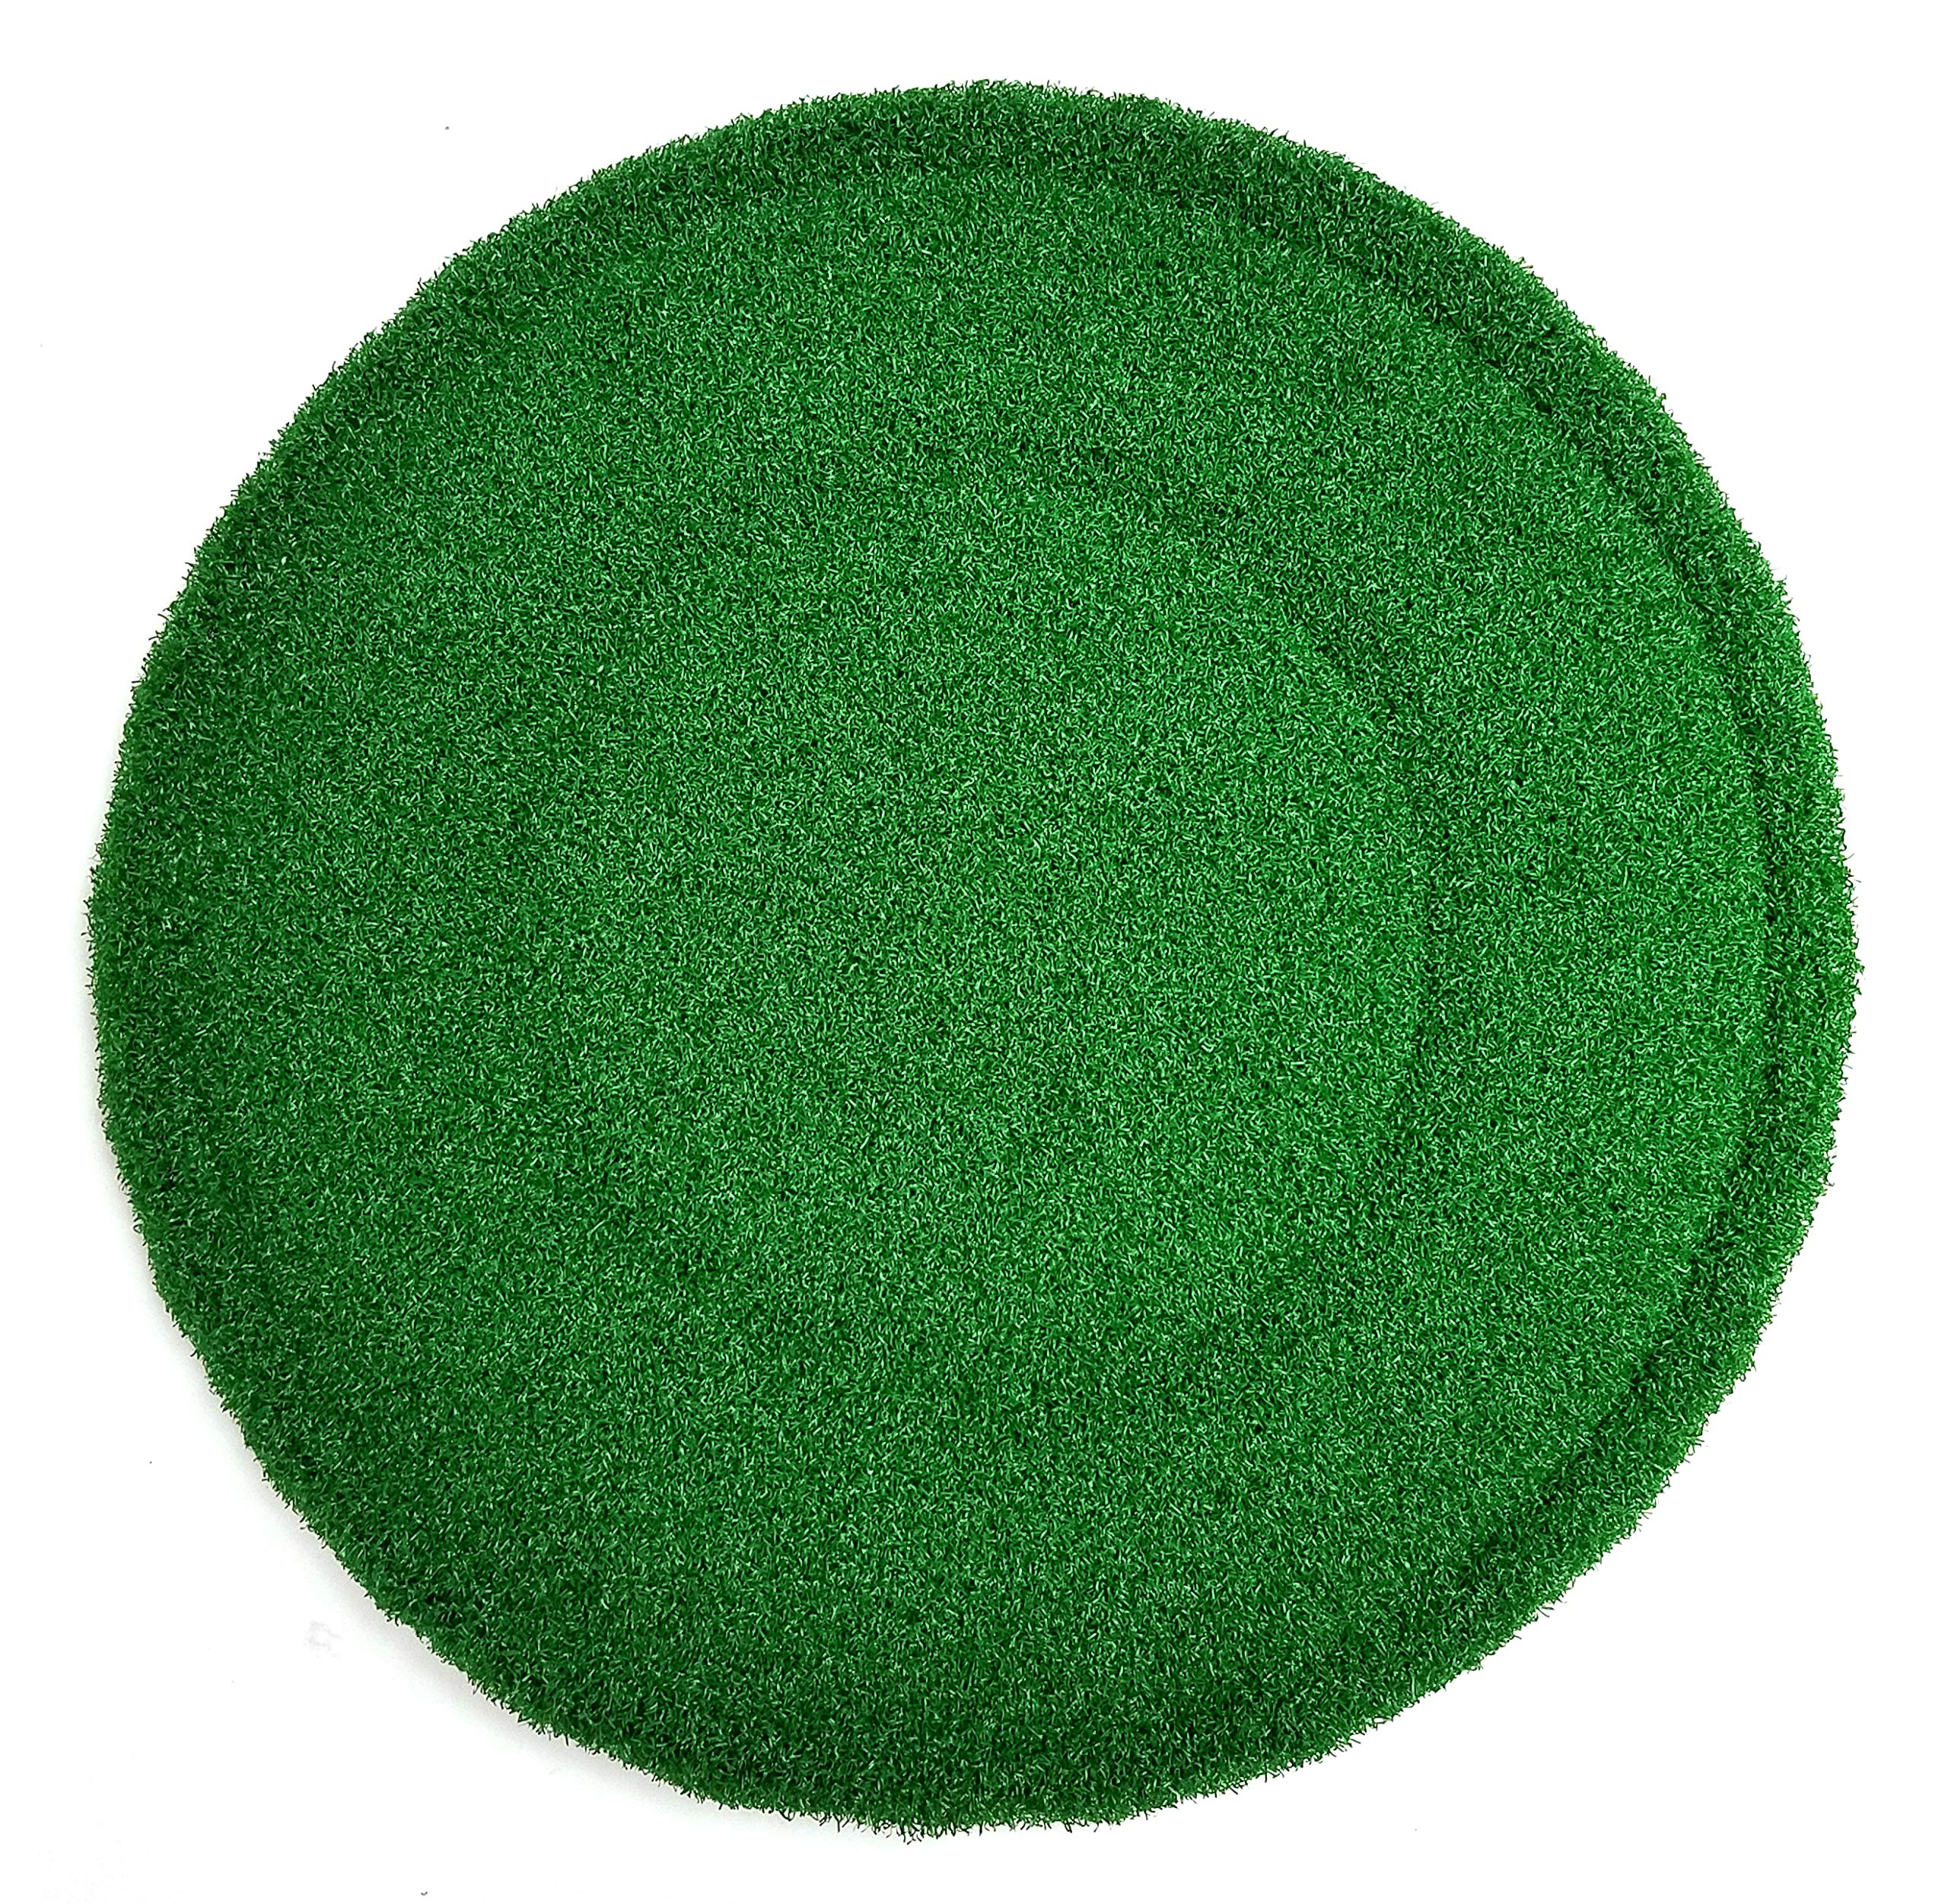 Square Scrub 20'' Green Round Tile and Grout Pad - Sold Individually by Square Scrub